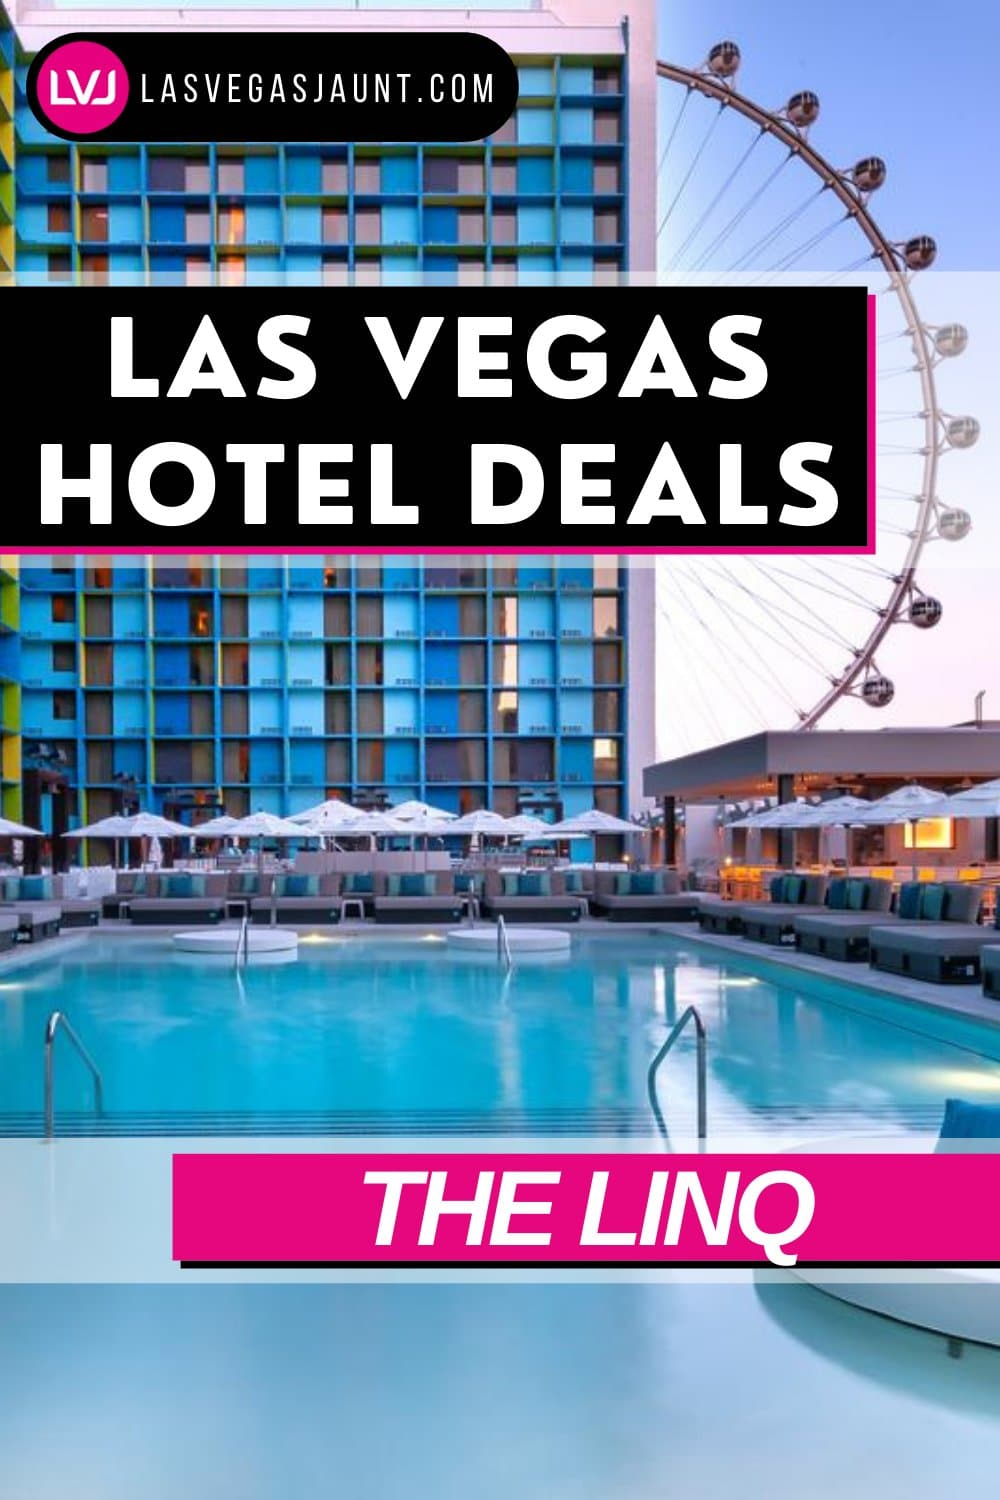 The Linq Hotel Las Vegas Deals Promo Codes & Discounts